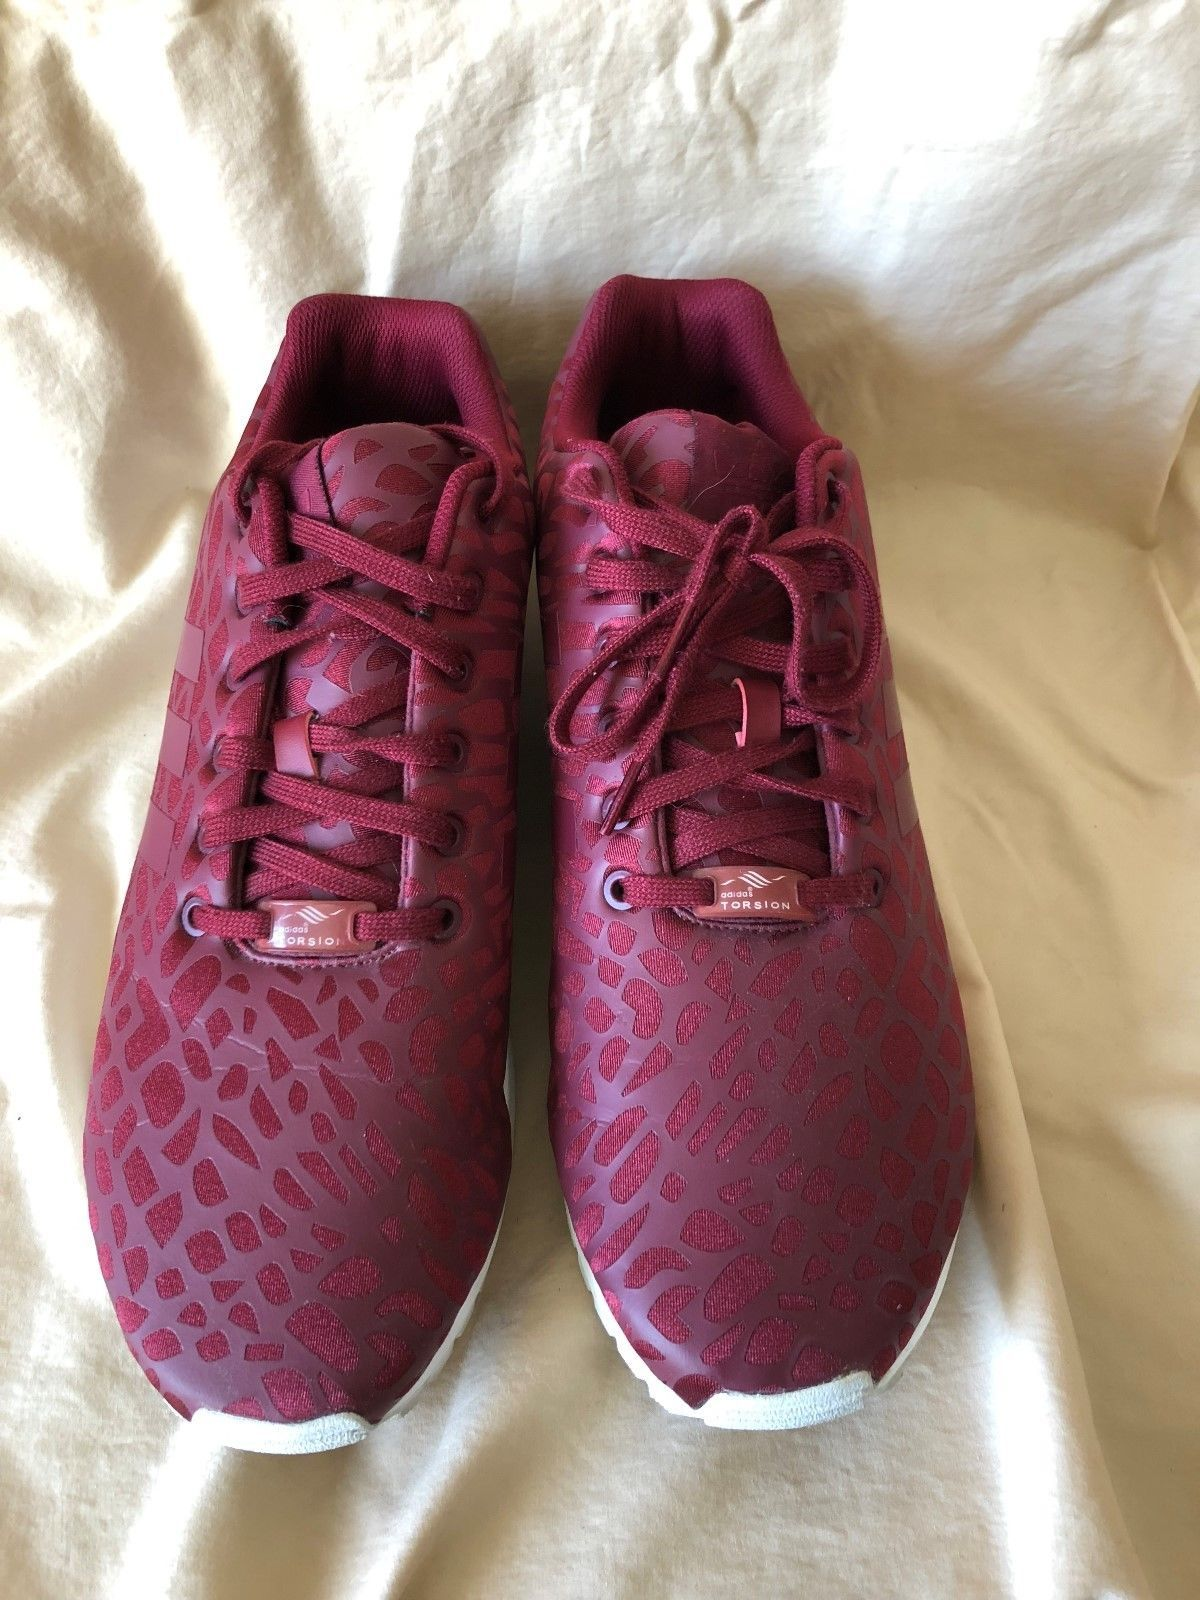 info for 0ae29 e774e 23 USD   Adidas Originals ZX Flux Mens Fitness Gym Workout Causal Trainers  Maroon Size 12